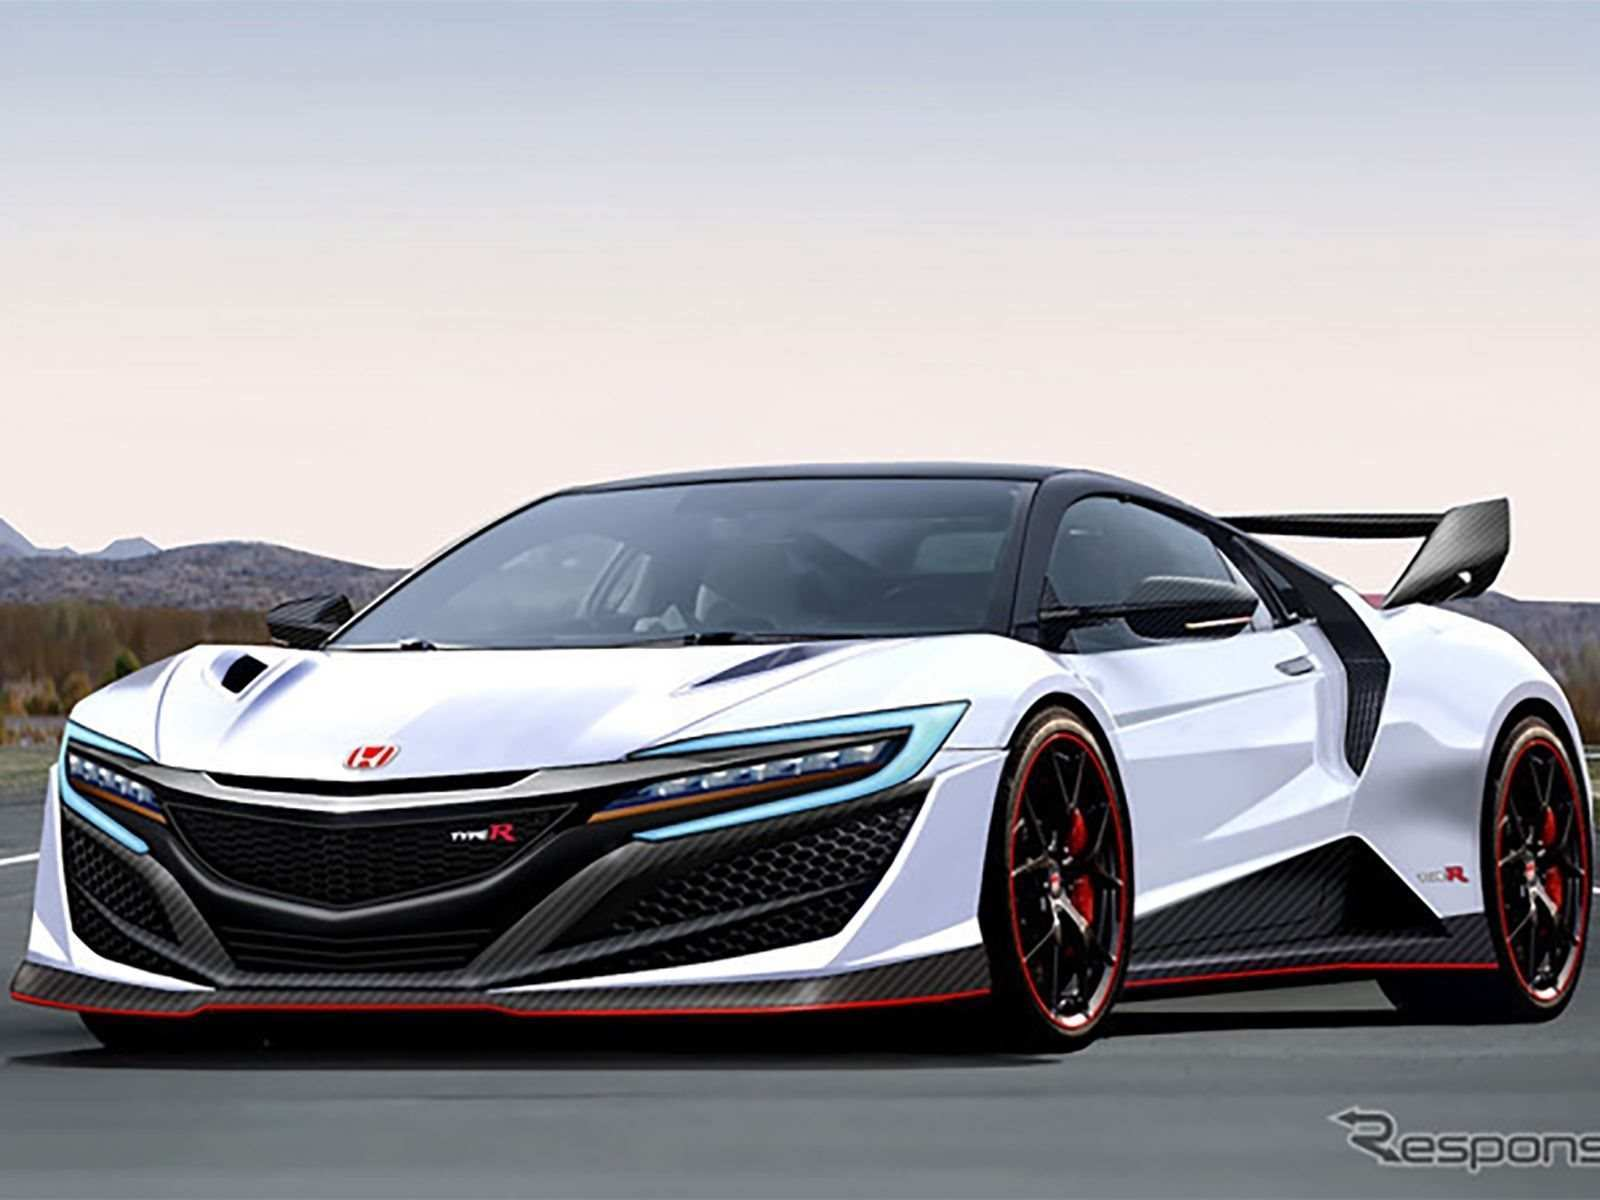 43 Great New 2019 Acura Nsx Msrp Picture Release Date And Review Specs by New 2019 Acura Nsx Msrp Picture Release Date And Review